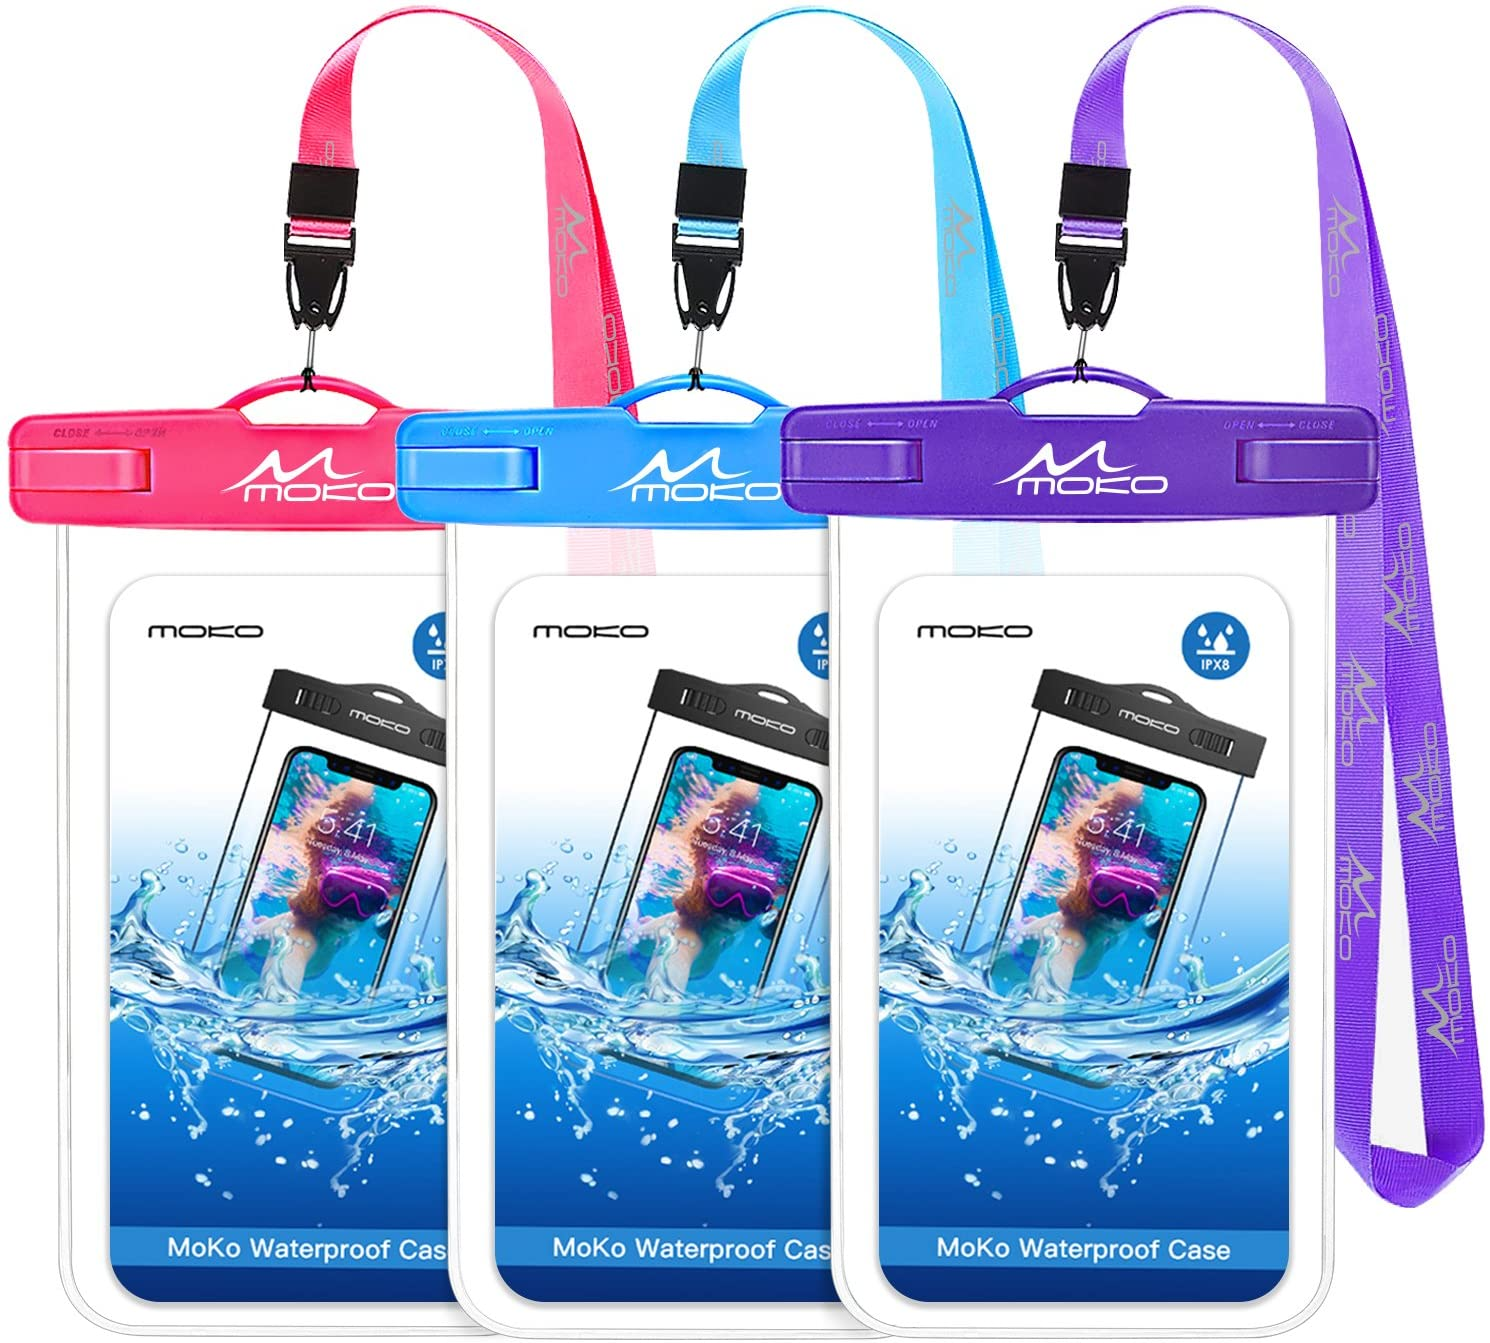 MoKo Waterproof Phone Pouch [3 Pack], Underwater Clear Phone Case Dry Bag with Lanyard Compatible with iPhone 12 Mini/12 Pro, iPhone 11 Pro Max, X/Xs/Xr/Xs Max, 8/7, Galaxy S21/S10/S9, Note 10/9/8